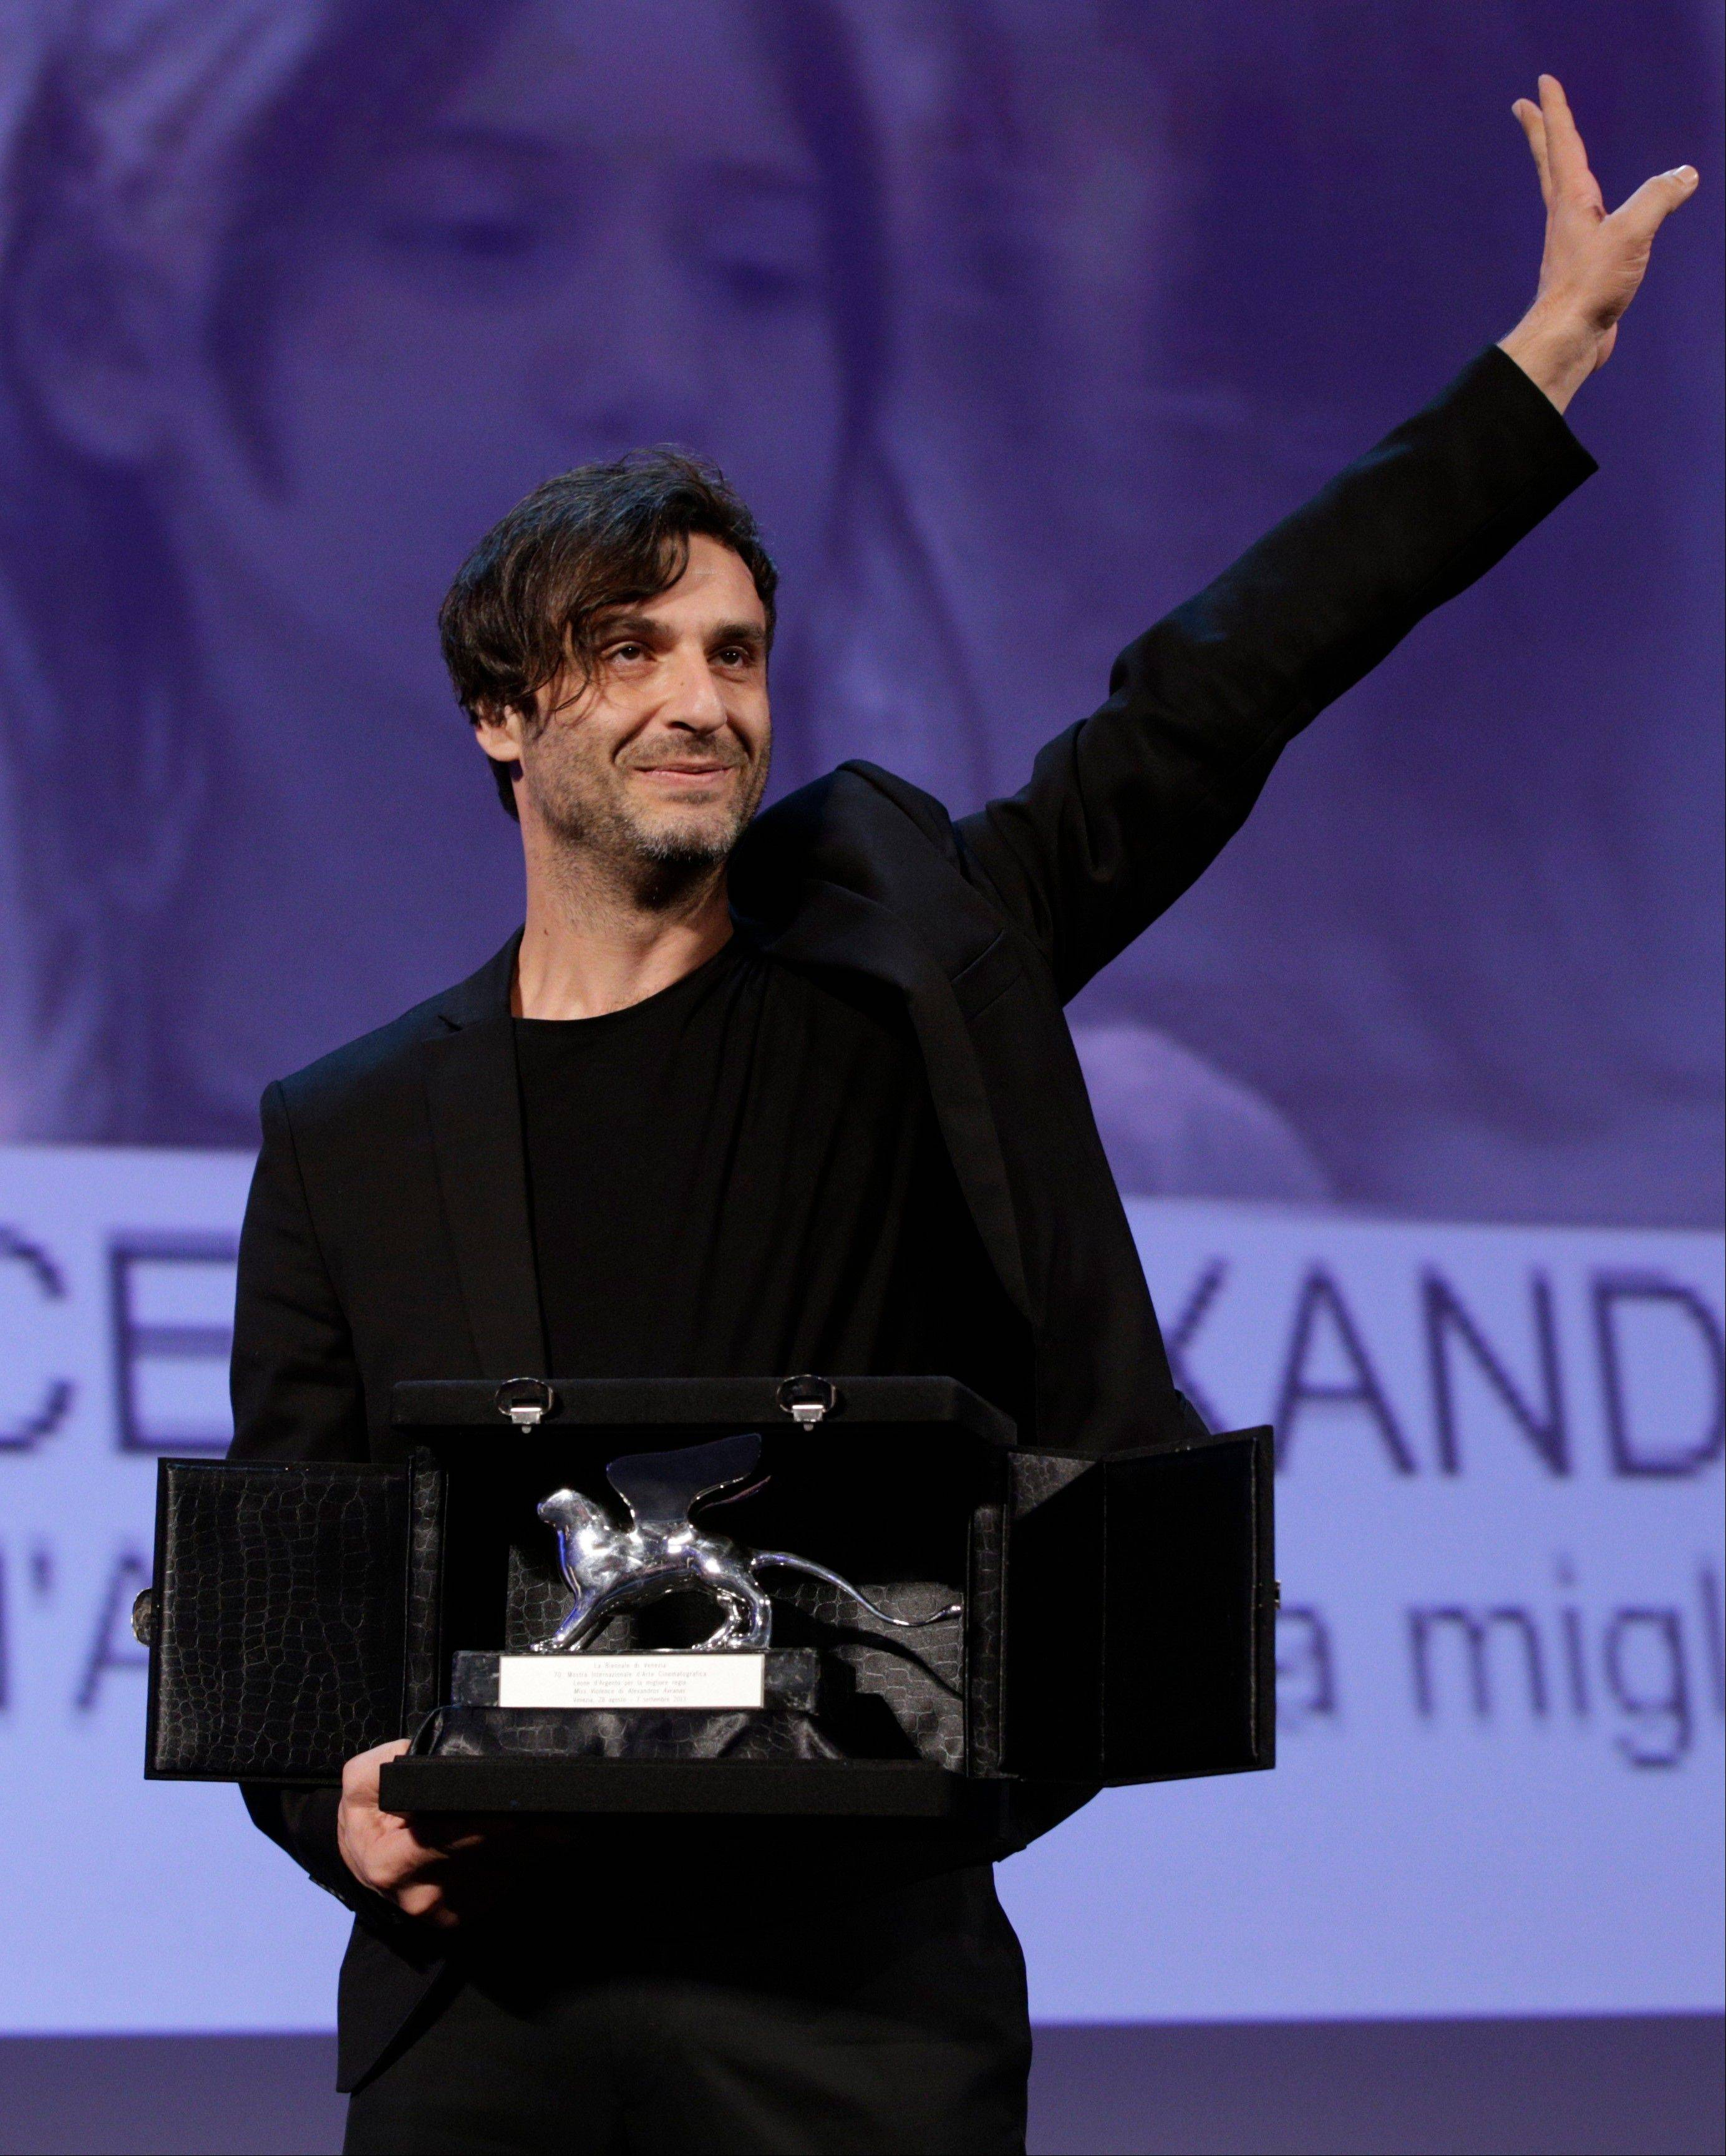 Director Alexandros Avranas holds the Silver Lion for Best Director for the film Miss Violence, during the awards ceremony of the 70th edition of the Venice Film Festival in Venice, Italy, Saturday.